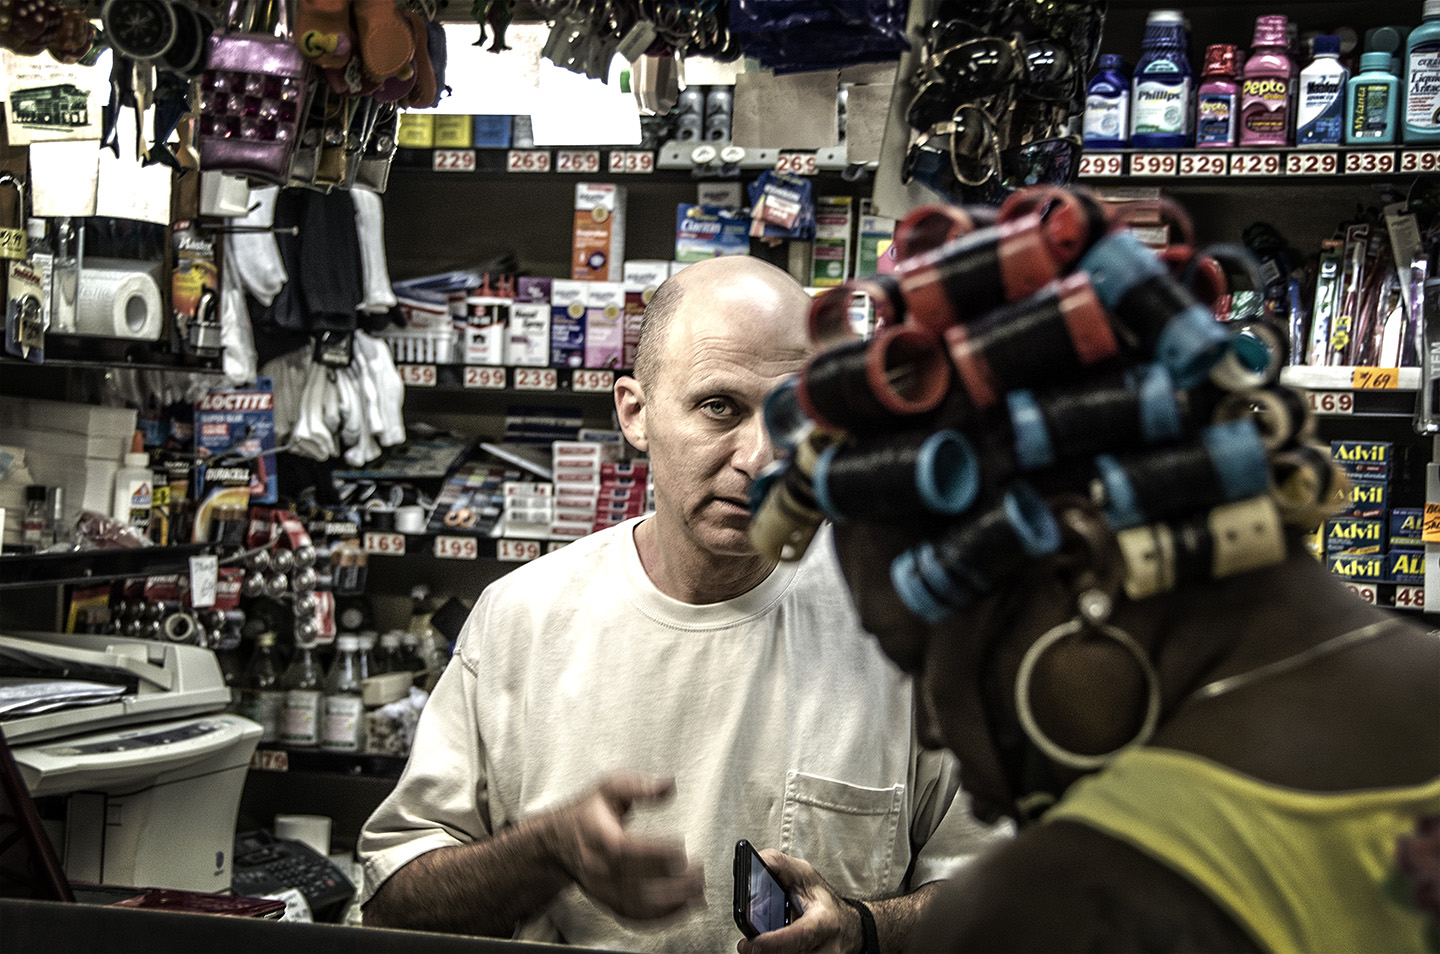 Mike Keller waits on a customer at his store, the Keller Market Food Store.